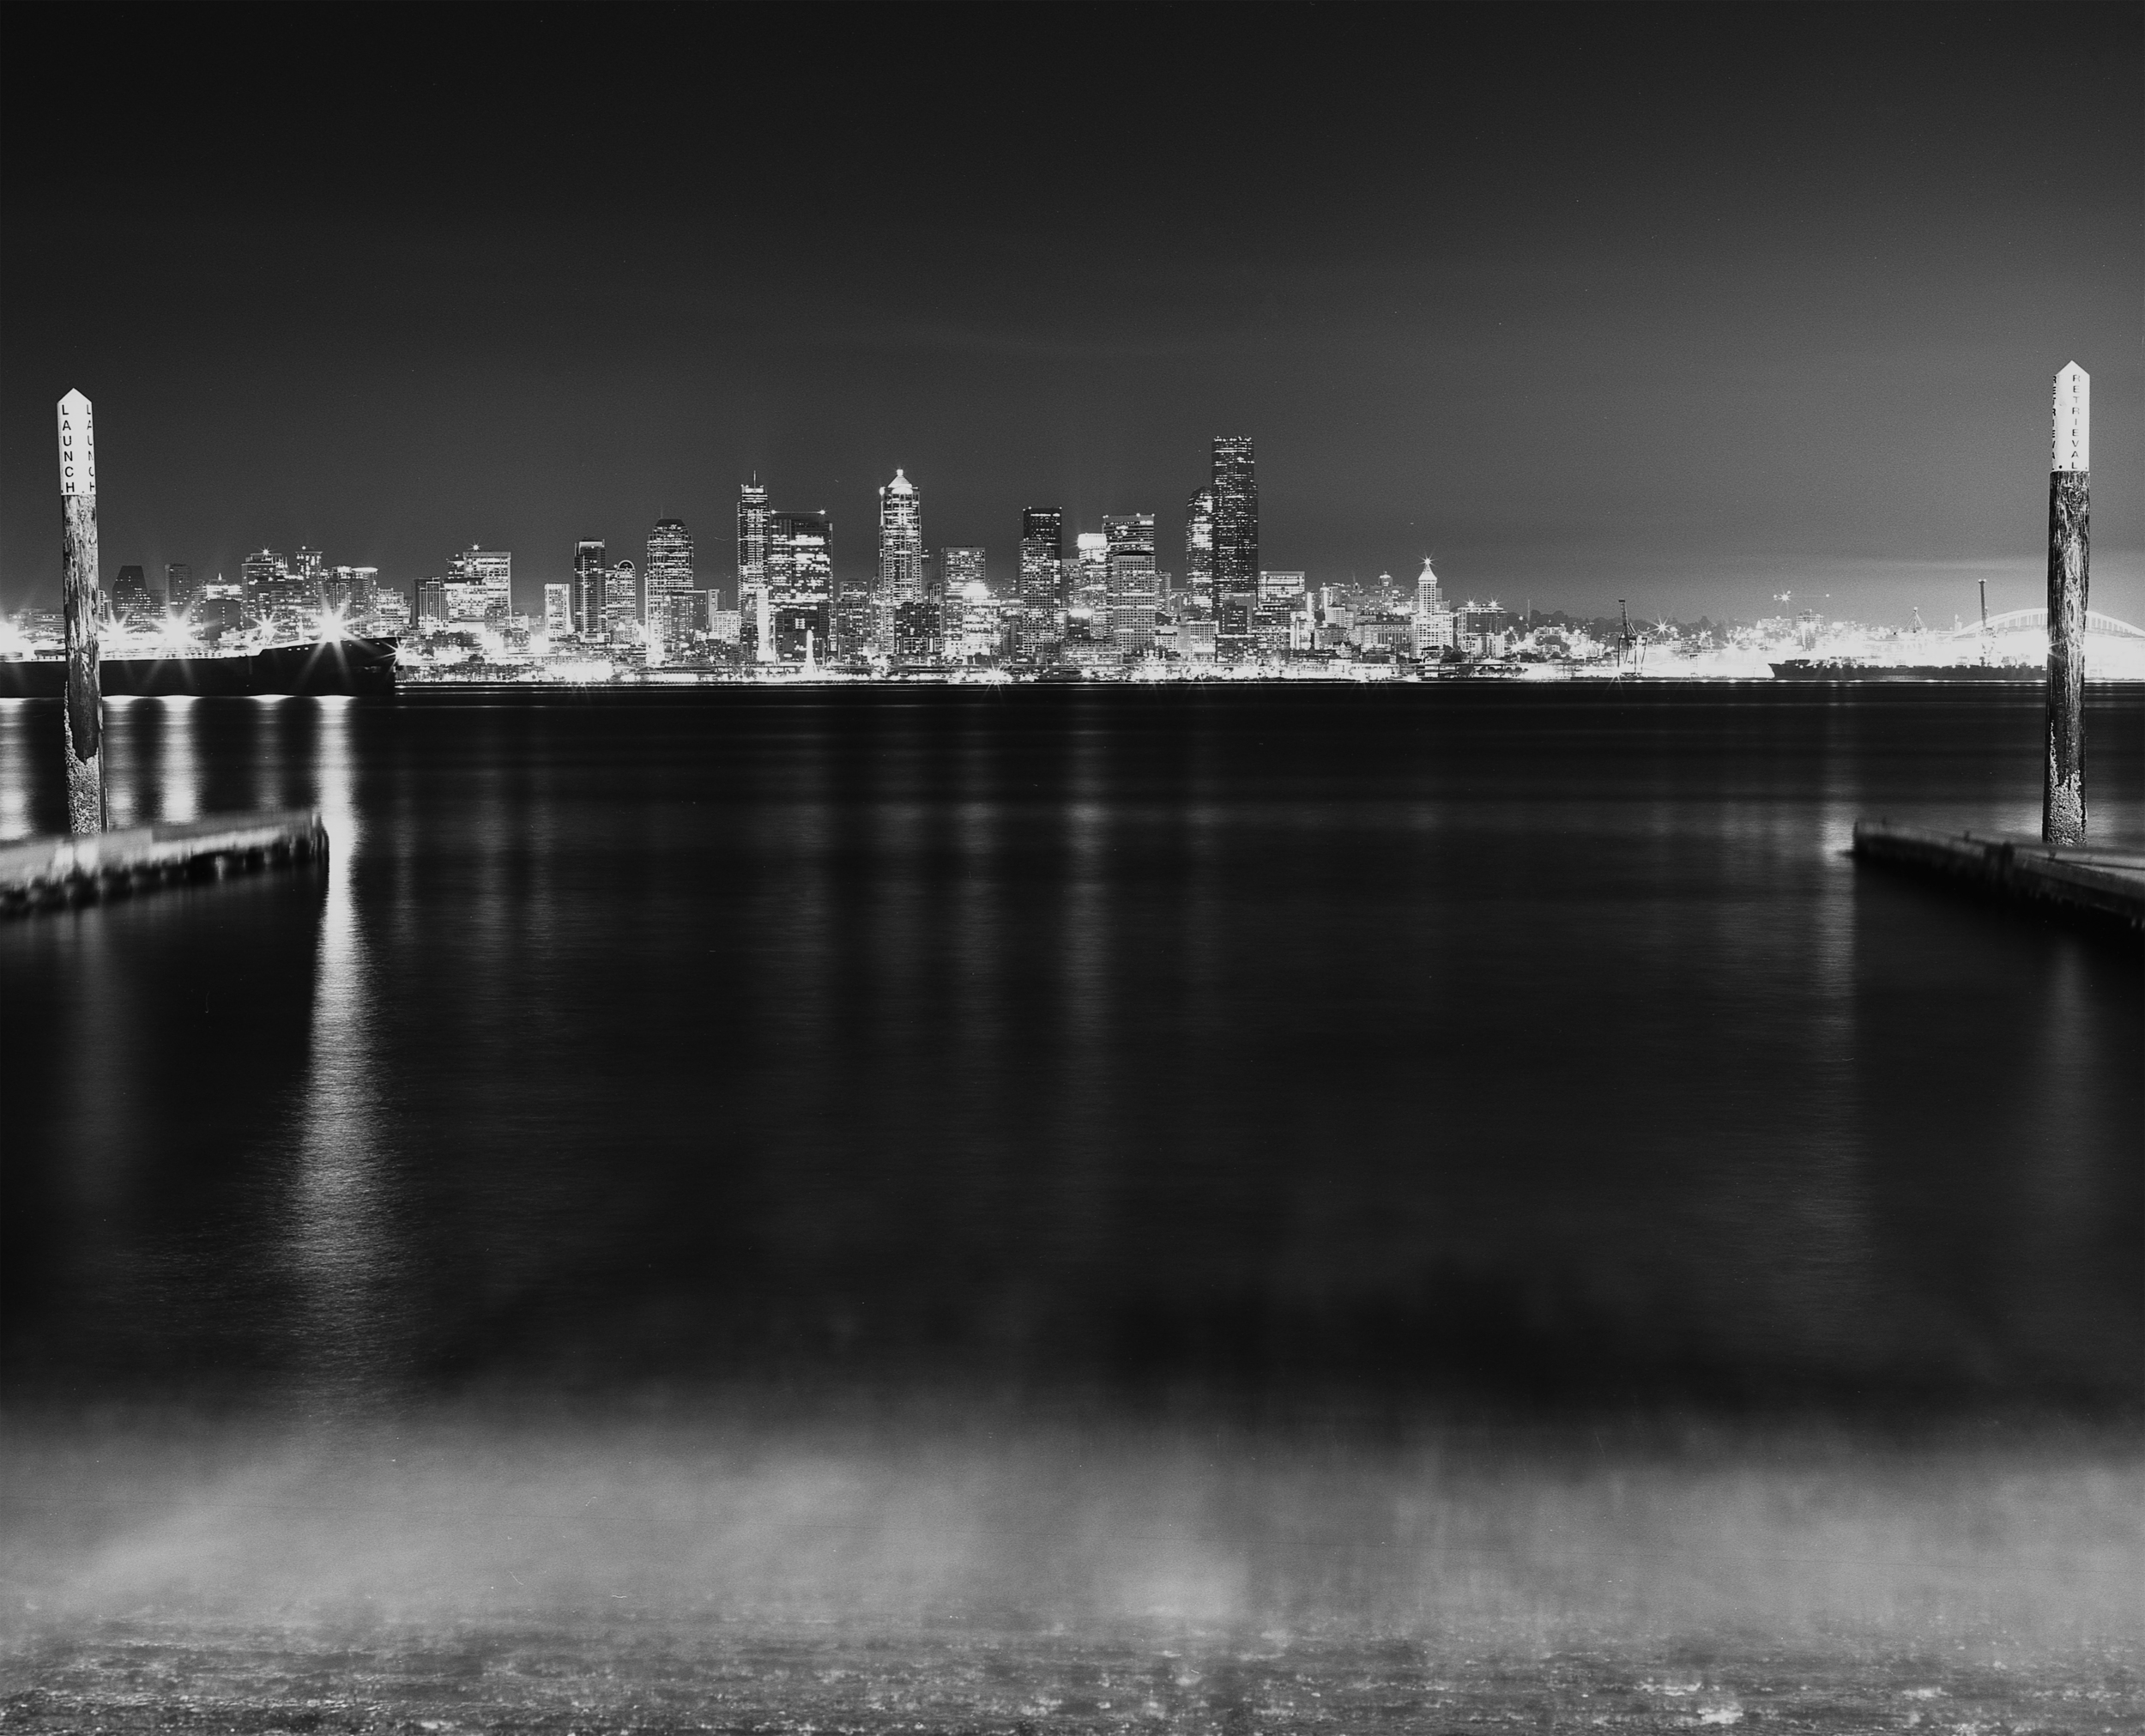 View of Downtown Seattle from Alki Beach, West Seattle. Image taken with Mamiya RB67 + Fujifilm Acros Neopan 100 and developed in Ilford Ilfosol 3.